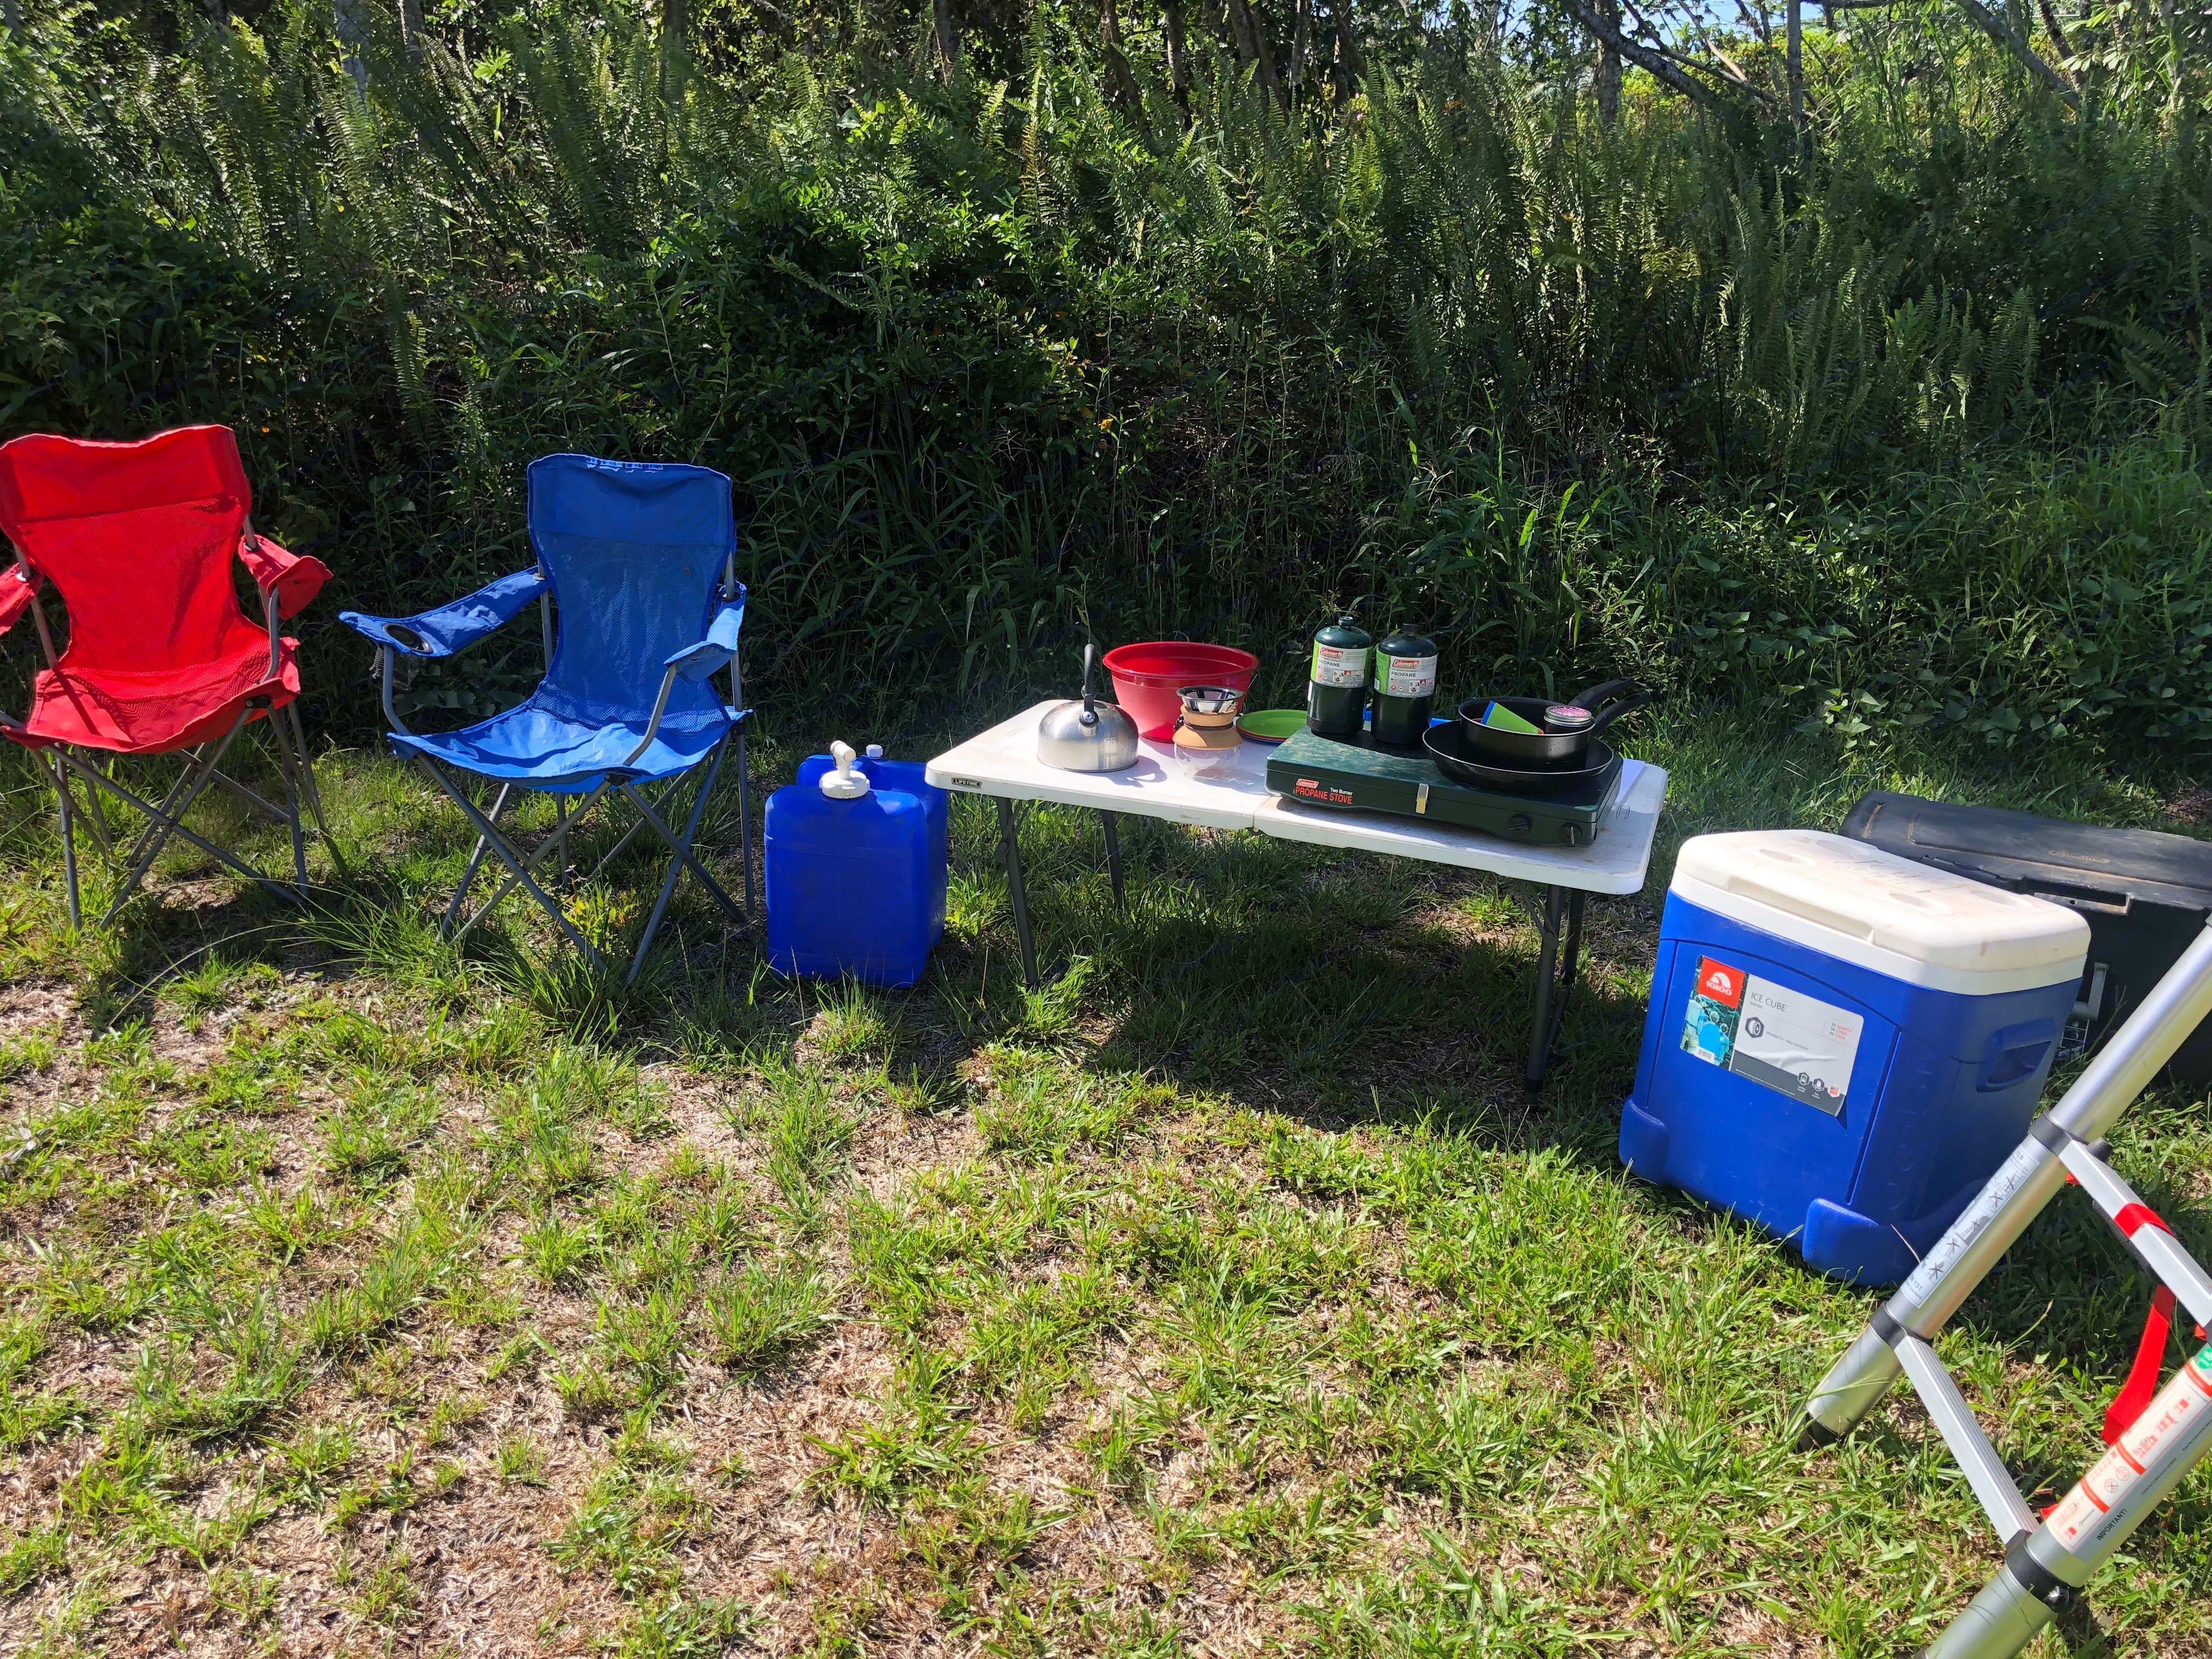 2 Chairs, Table, Cooler, 2 burner  Cook stove, propane, bed linens, towels, cookware, 5 gallons of water, Cooking supplies, coffee maker. Toyota Rav4 2011